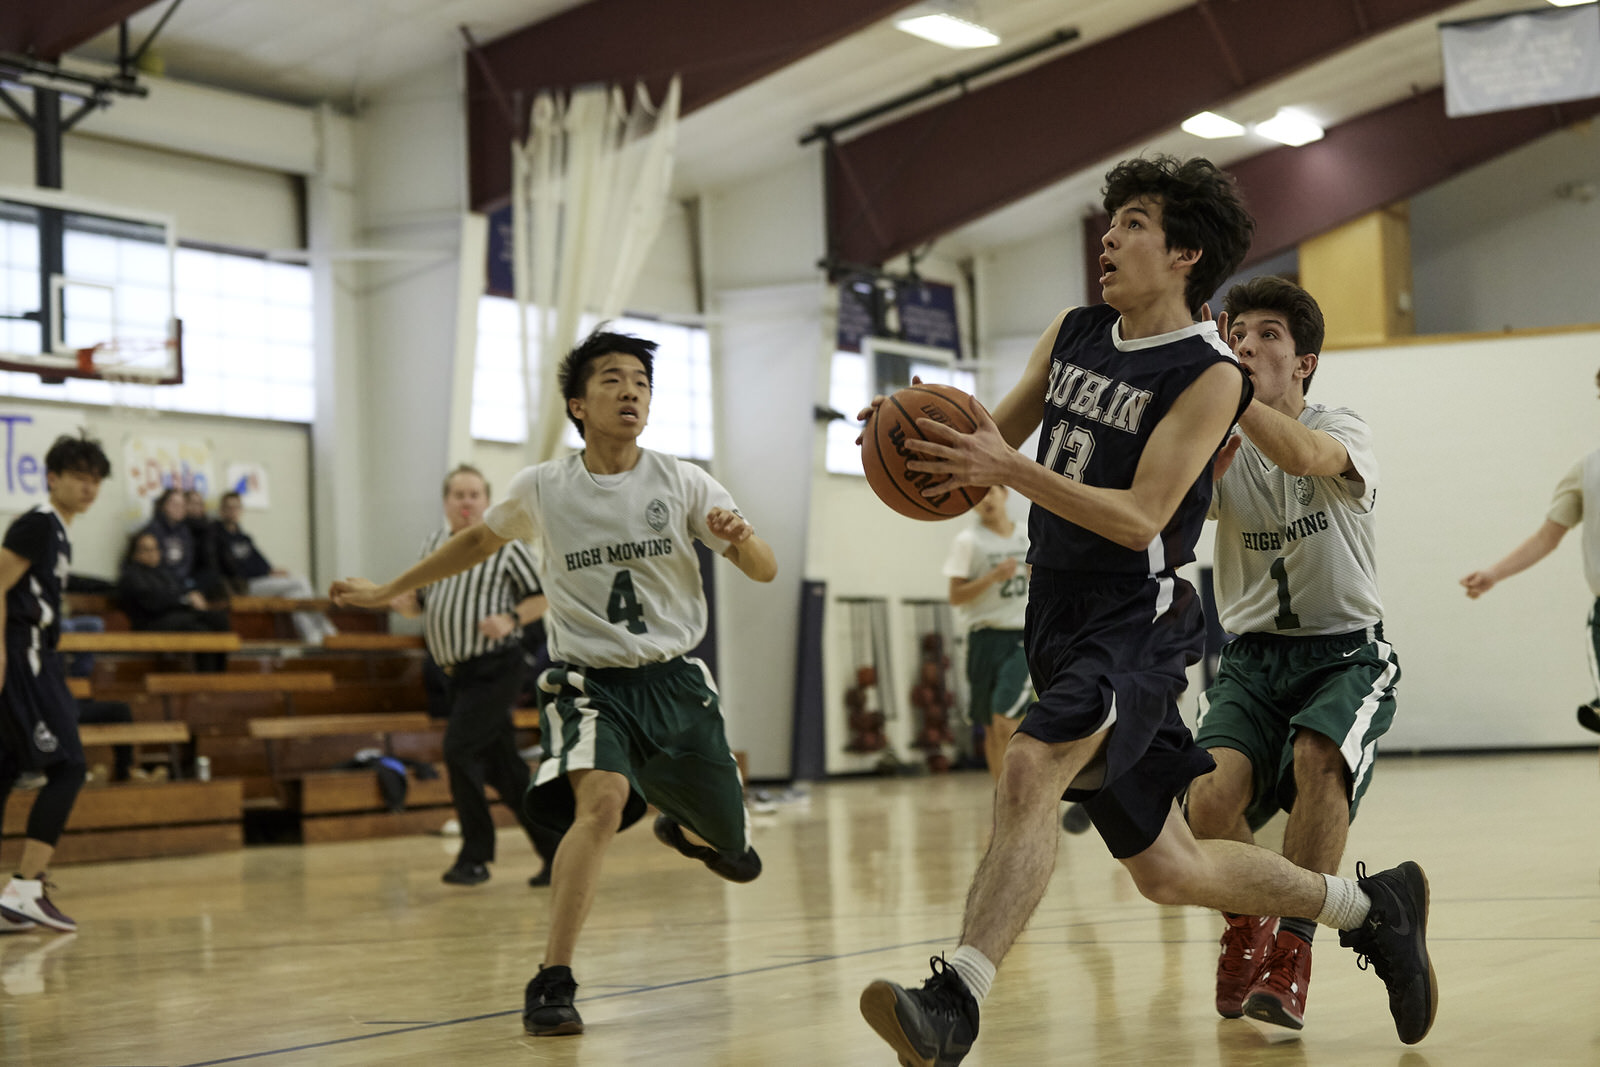 Dublin JV Boys Basketball vs High Mowing School - Jan 26 2019 - 0152.jpg